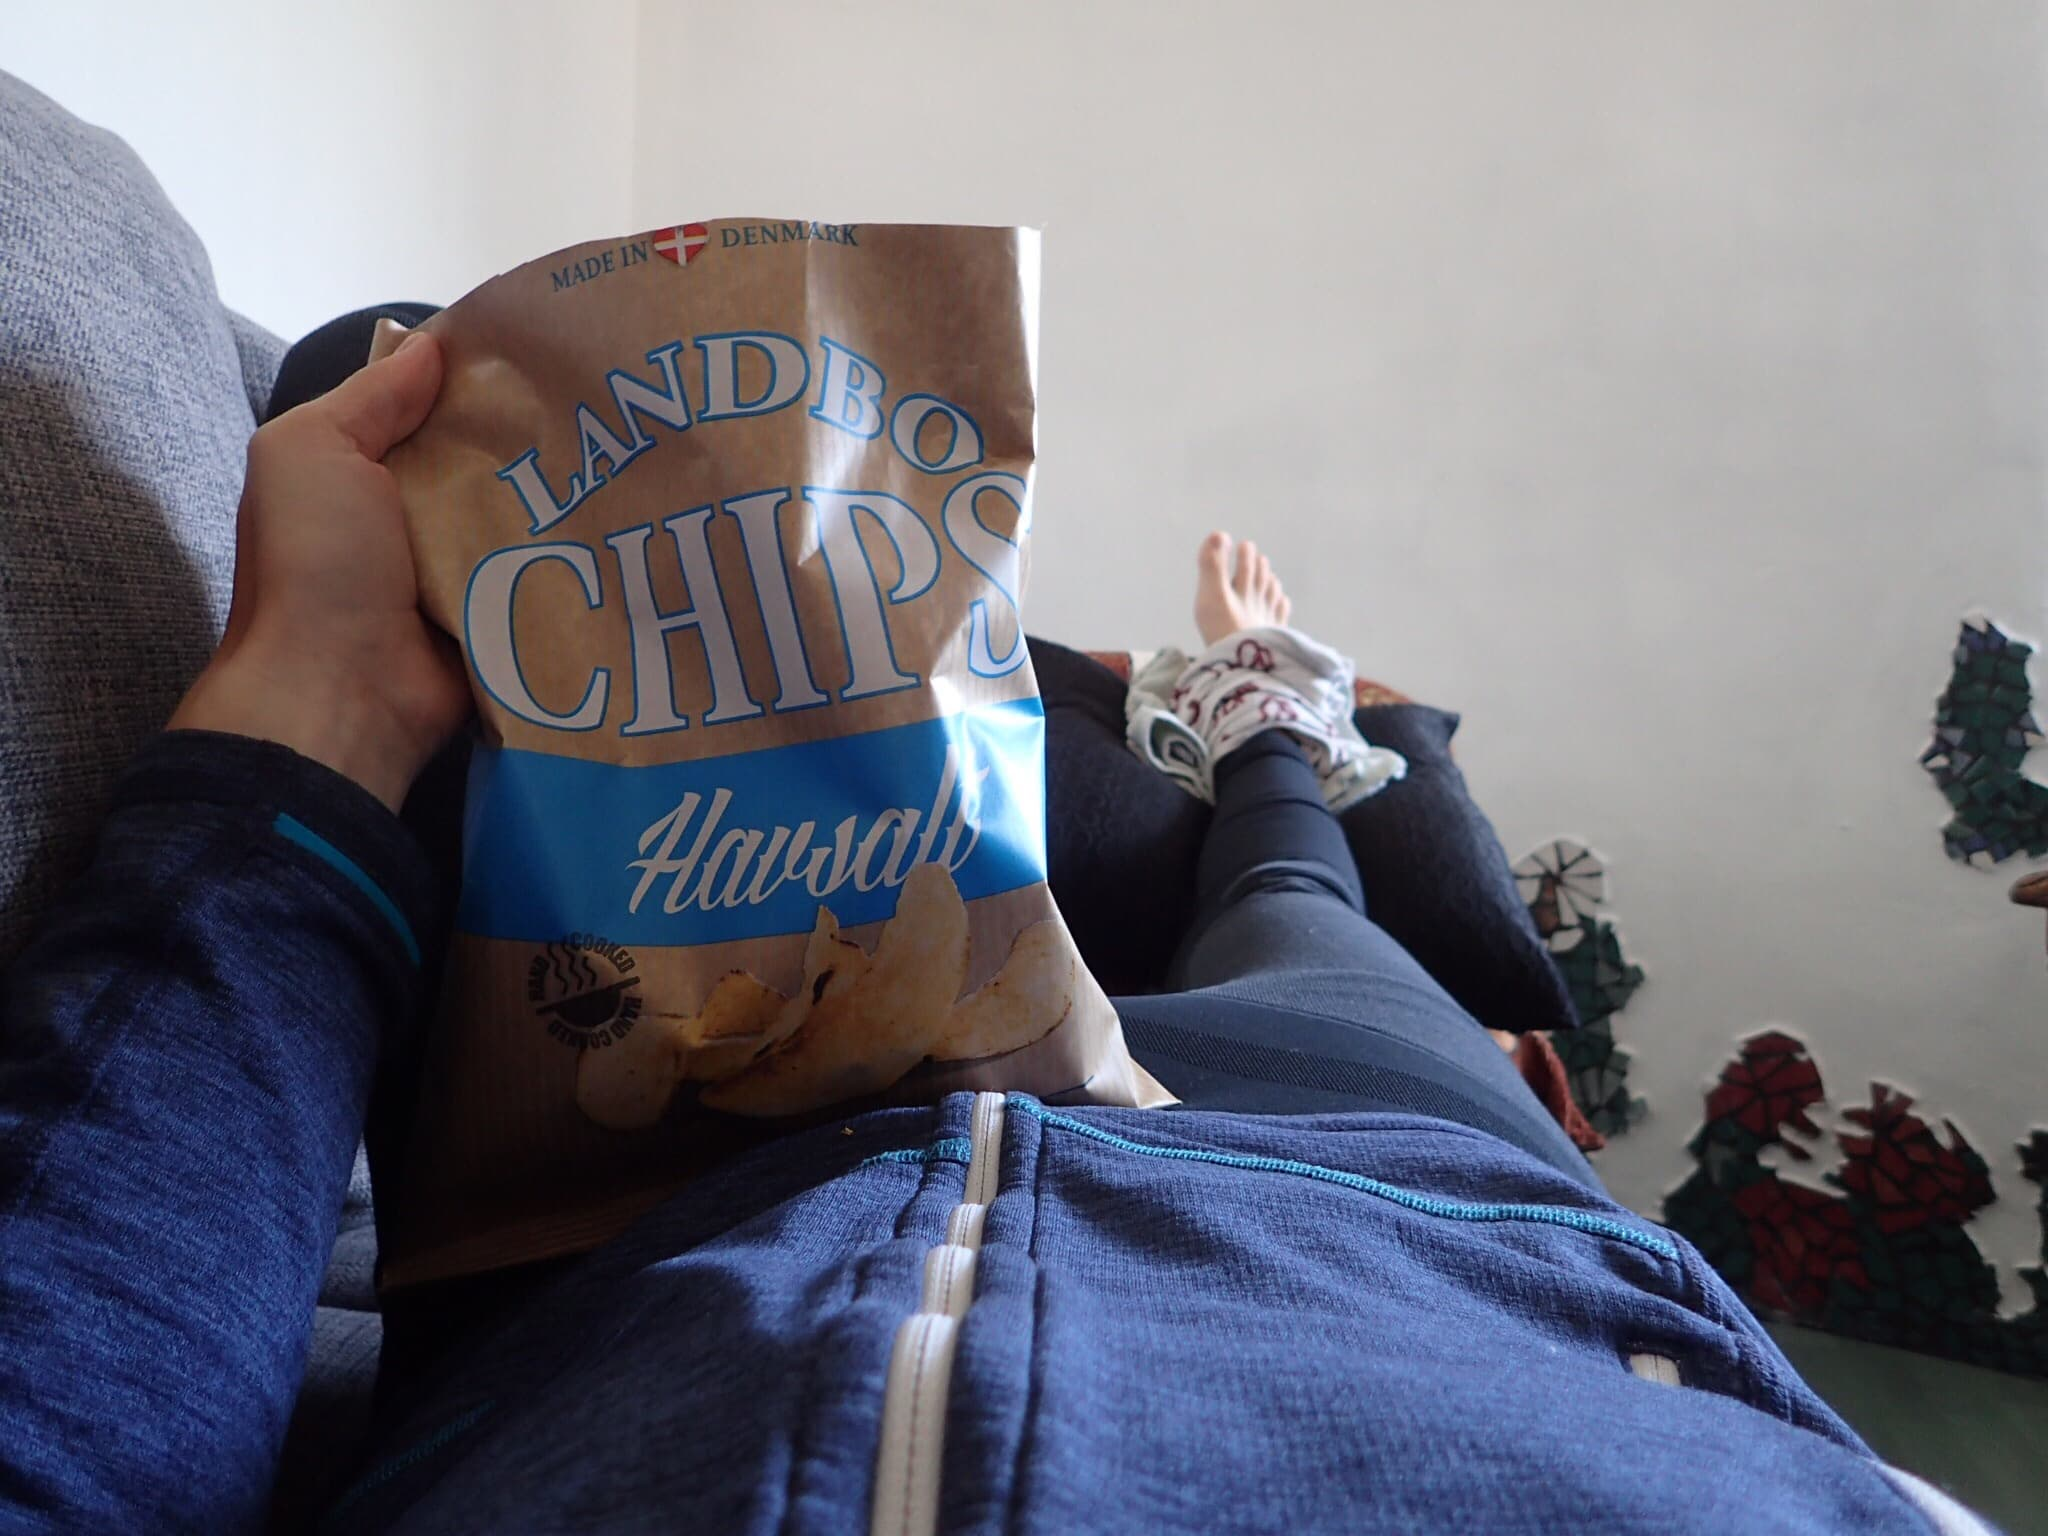 Chips made in Denmark - not too bad!